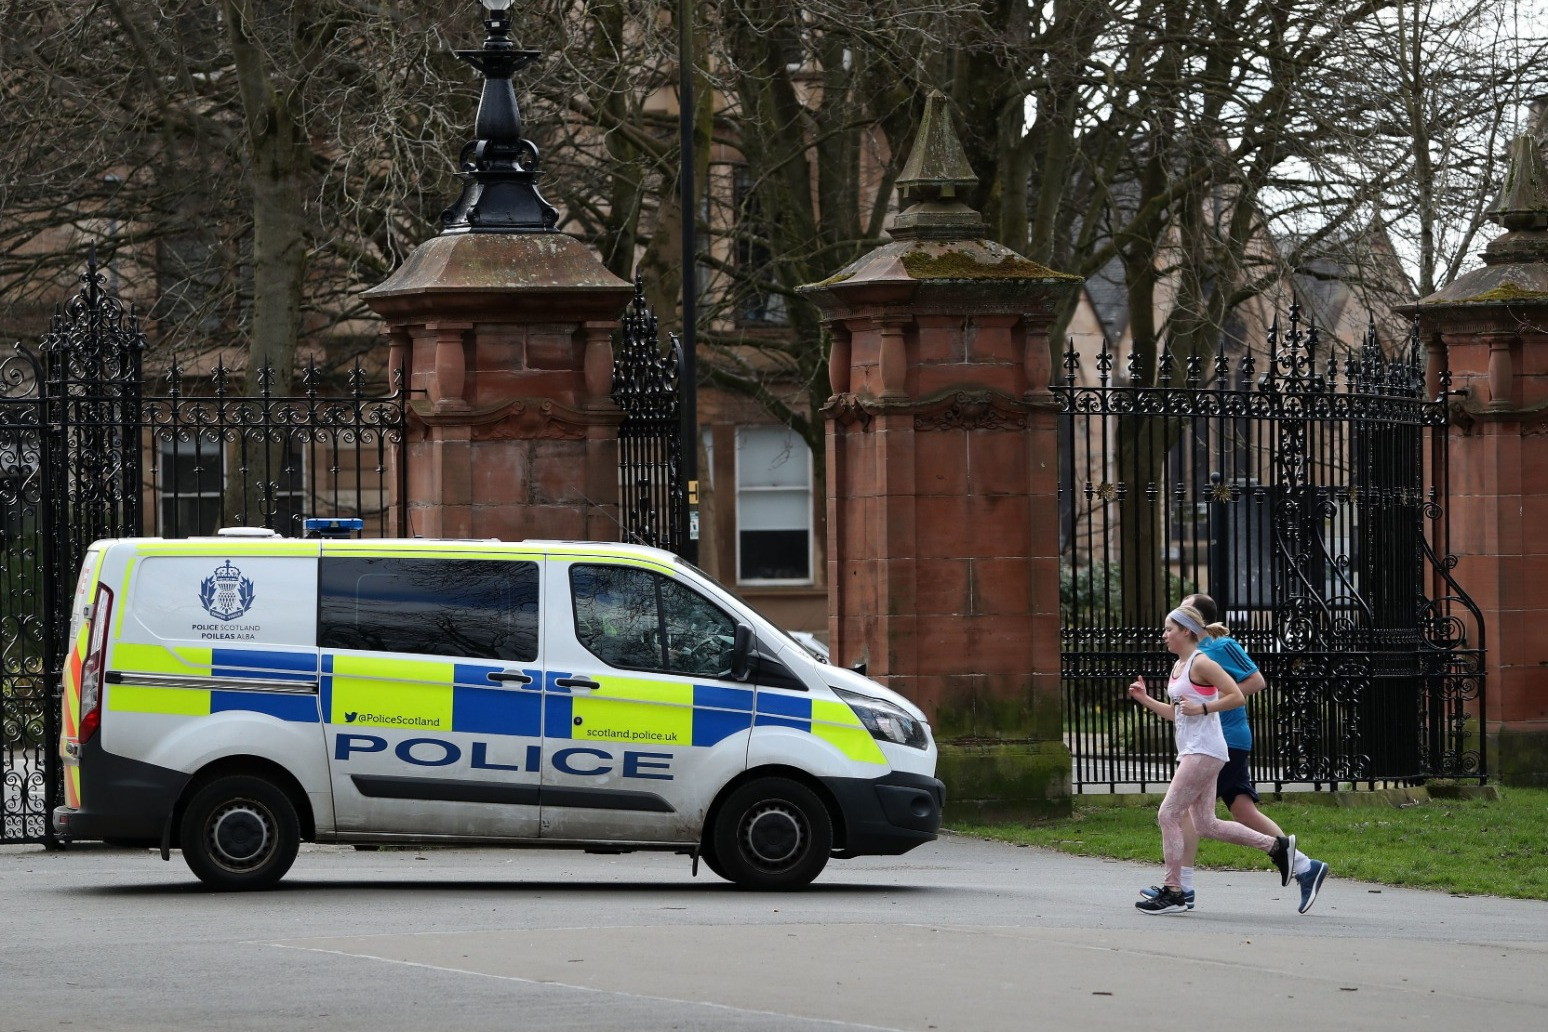 Police told to be \'consistent\' over coronavirus lockdown rules